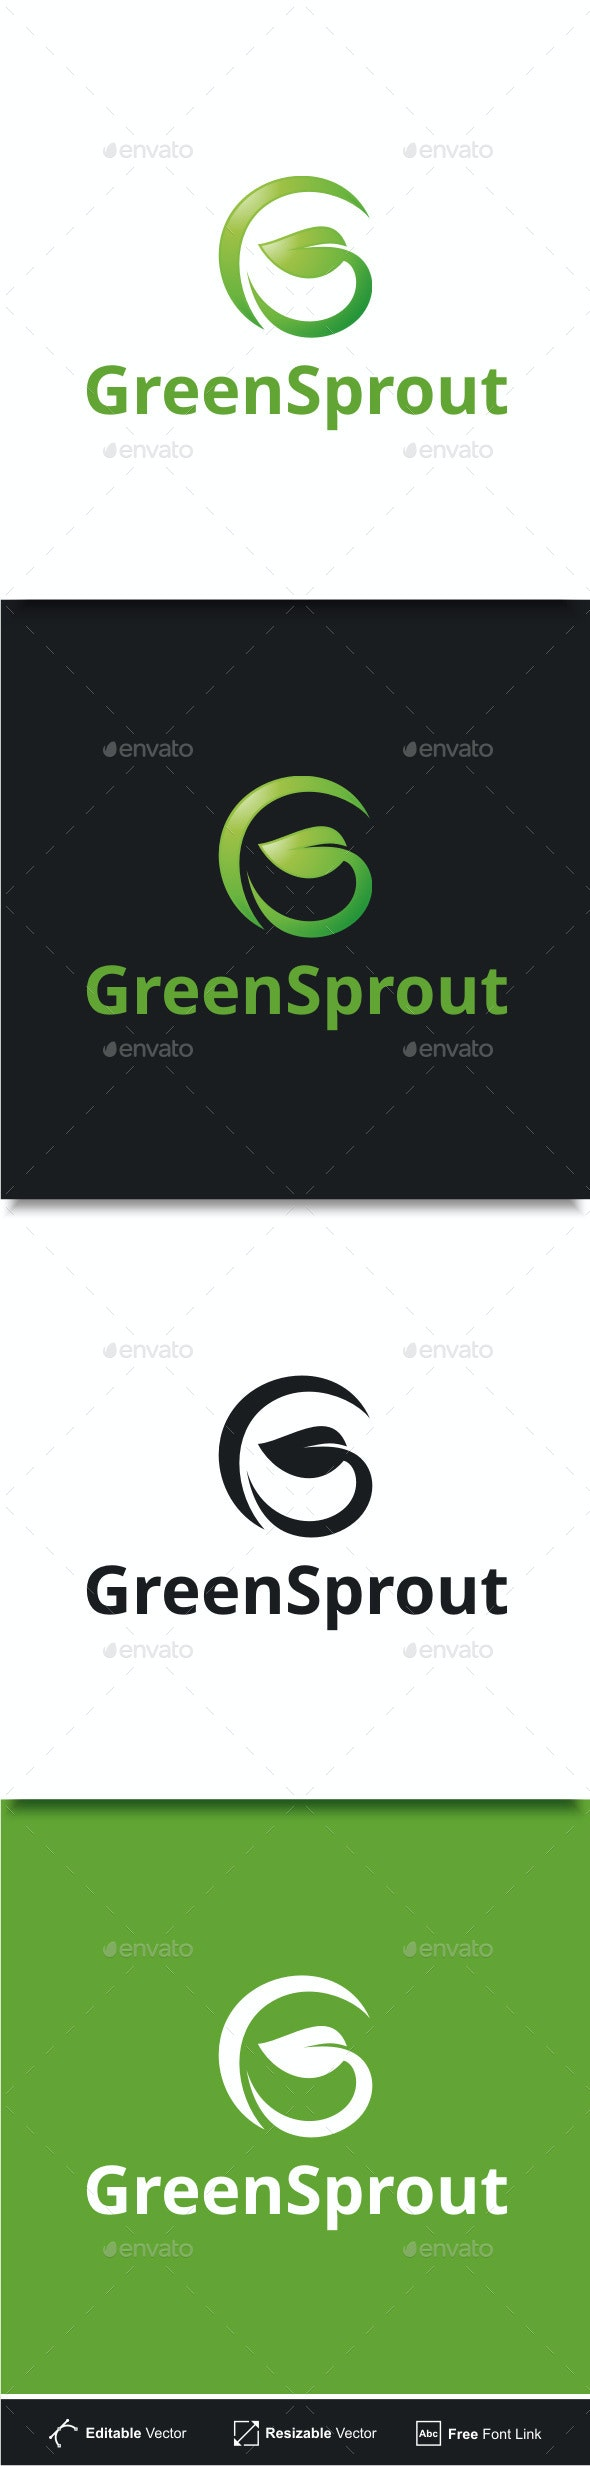 Green Sprout - Letter G Logo - Nature Logo Templates